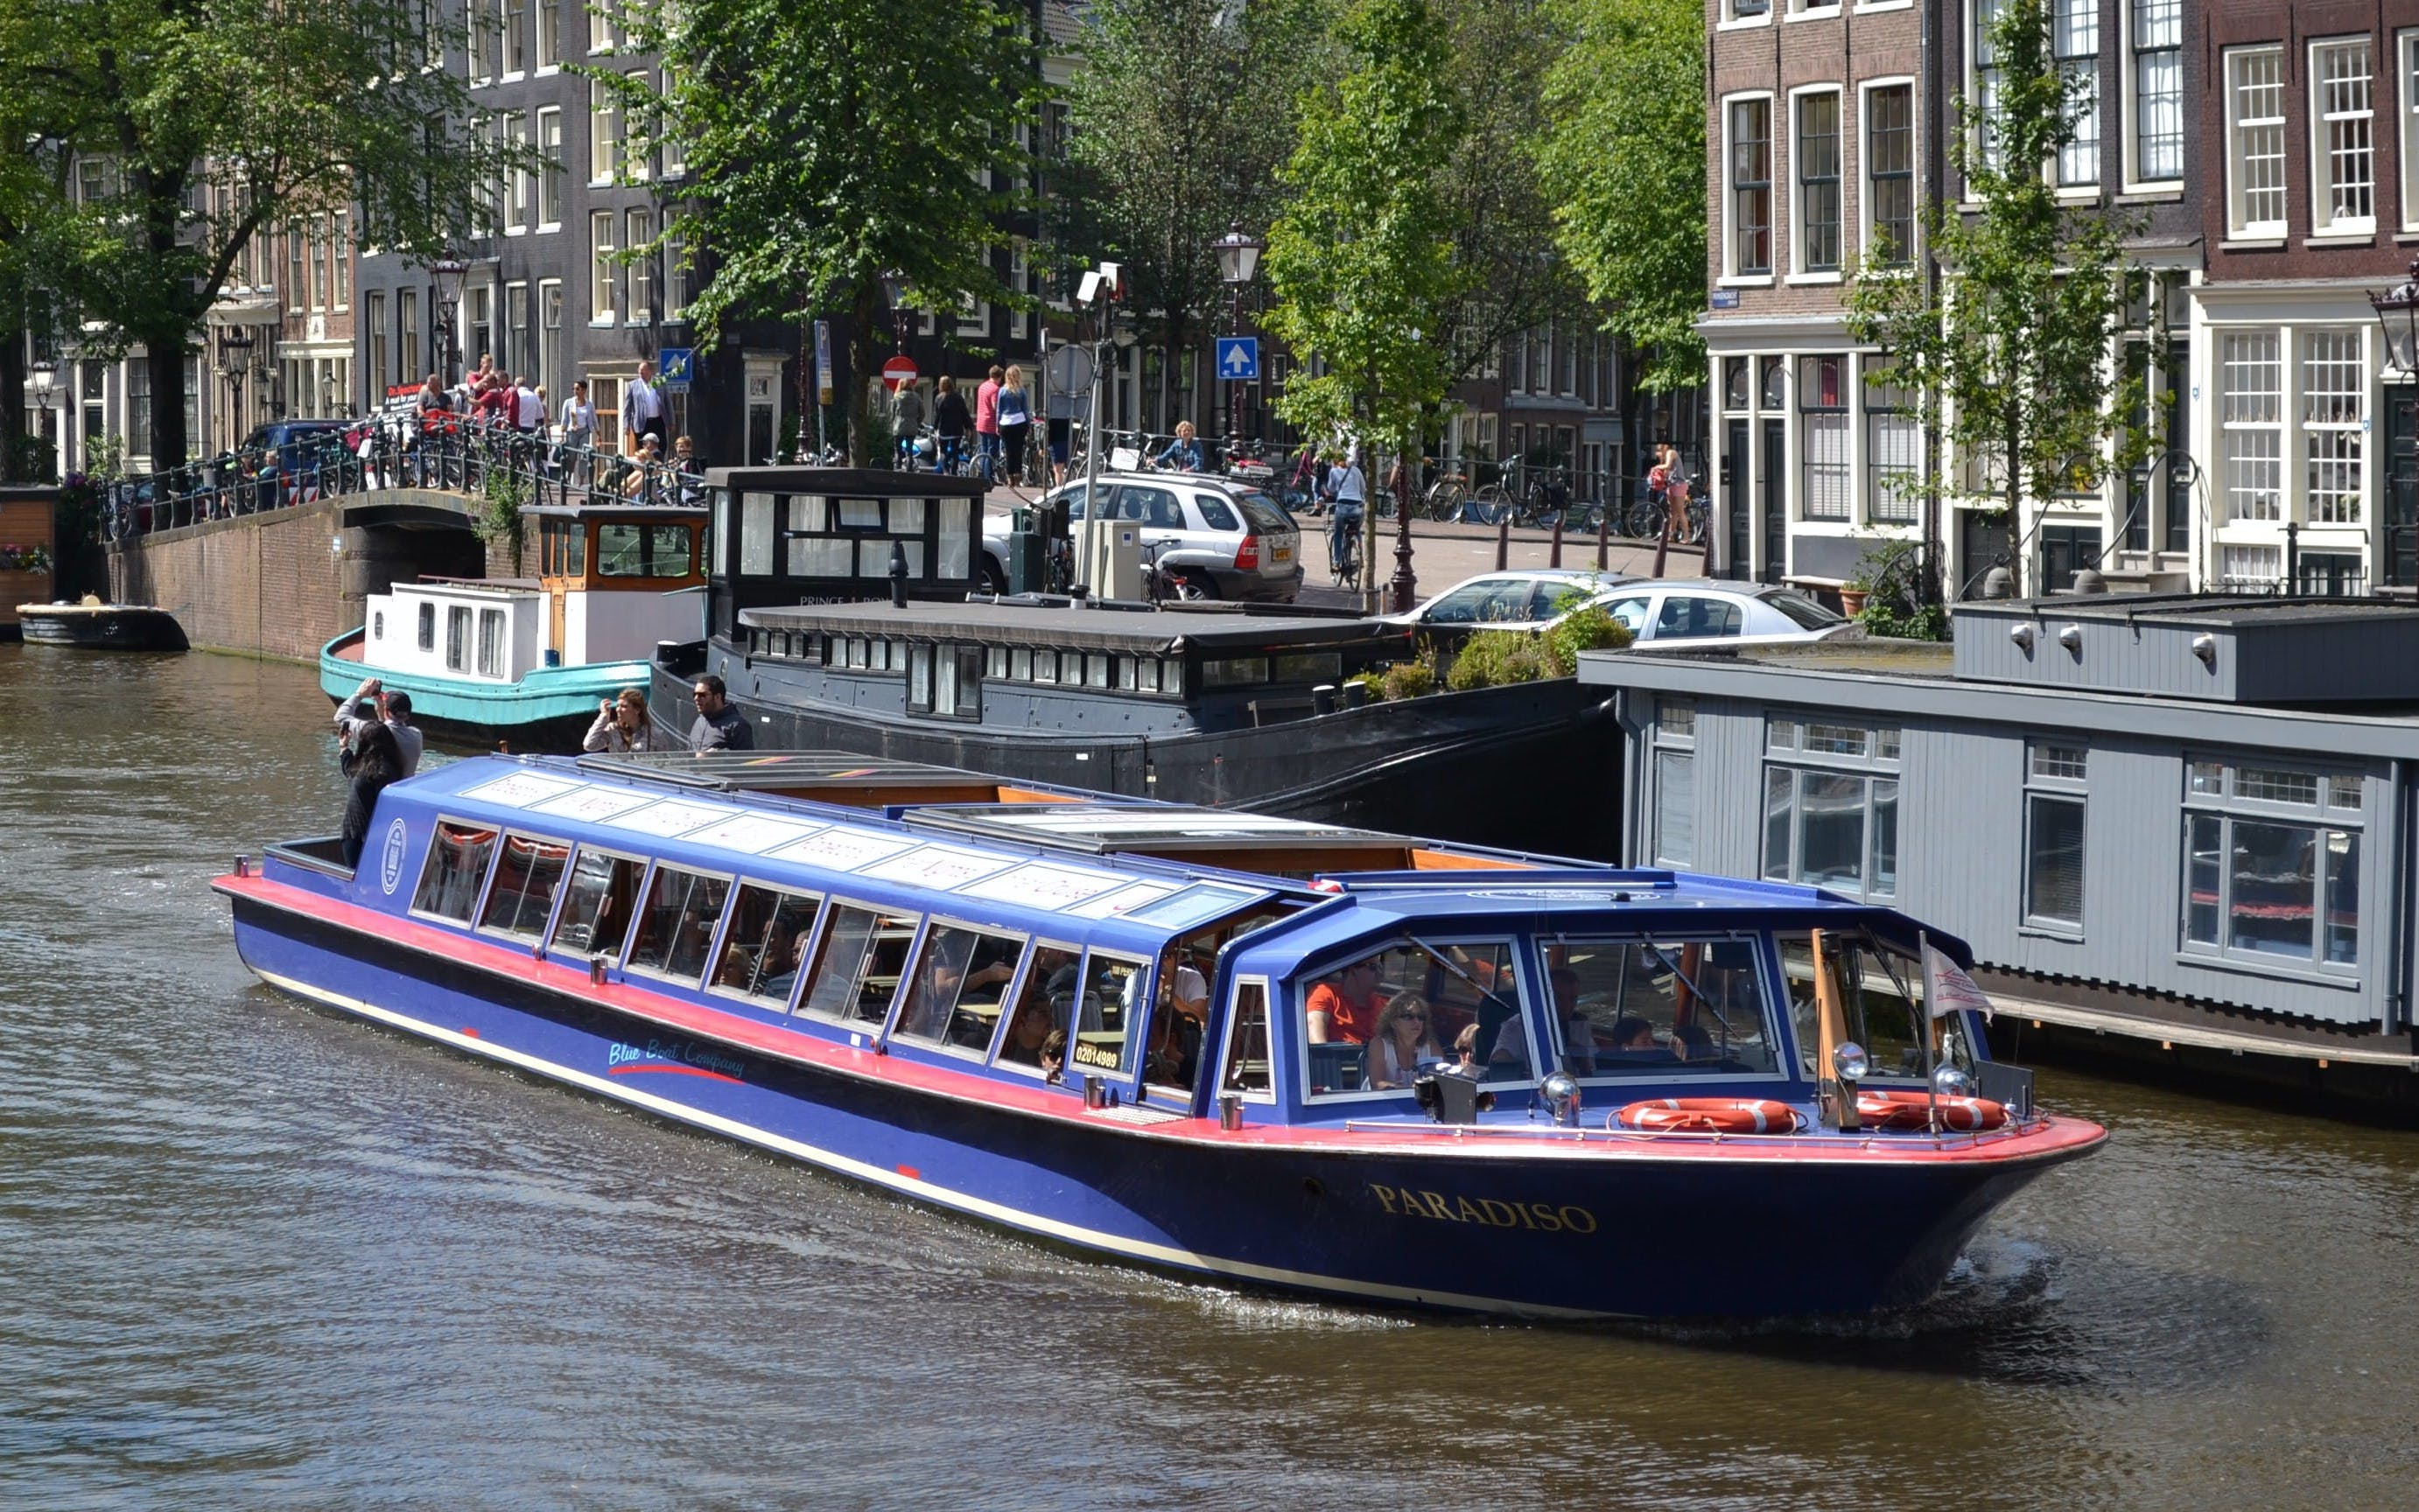 Skip The Line Combo: City Canal Cruise & House of Bols